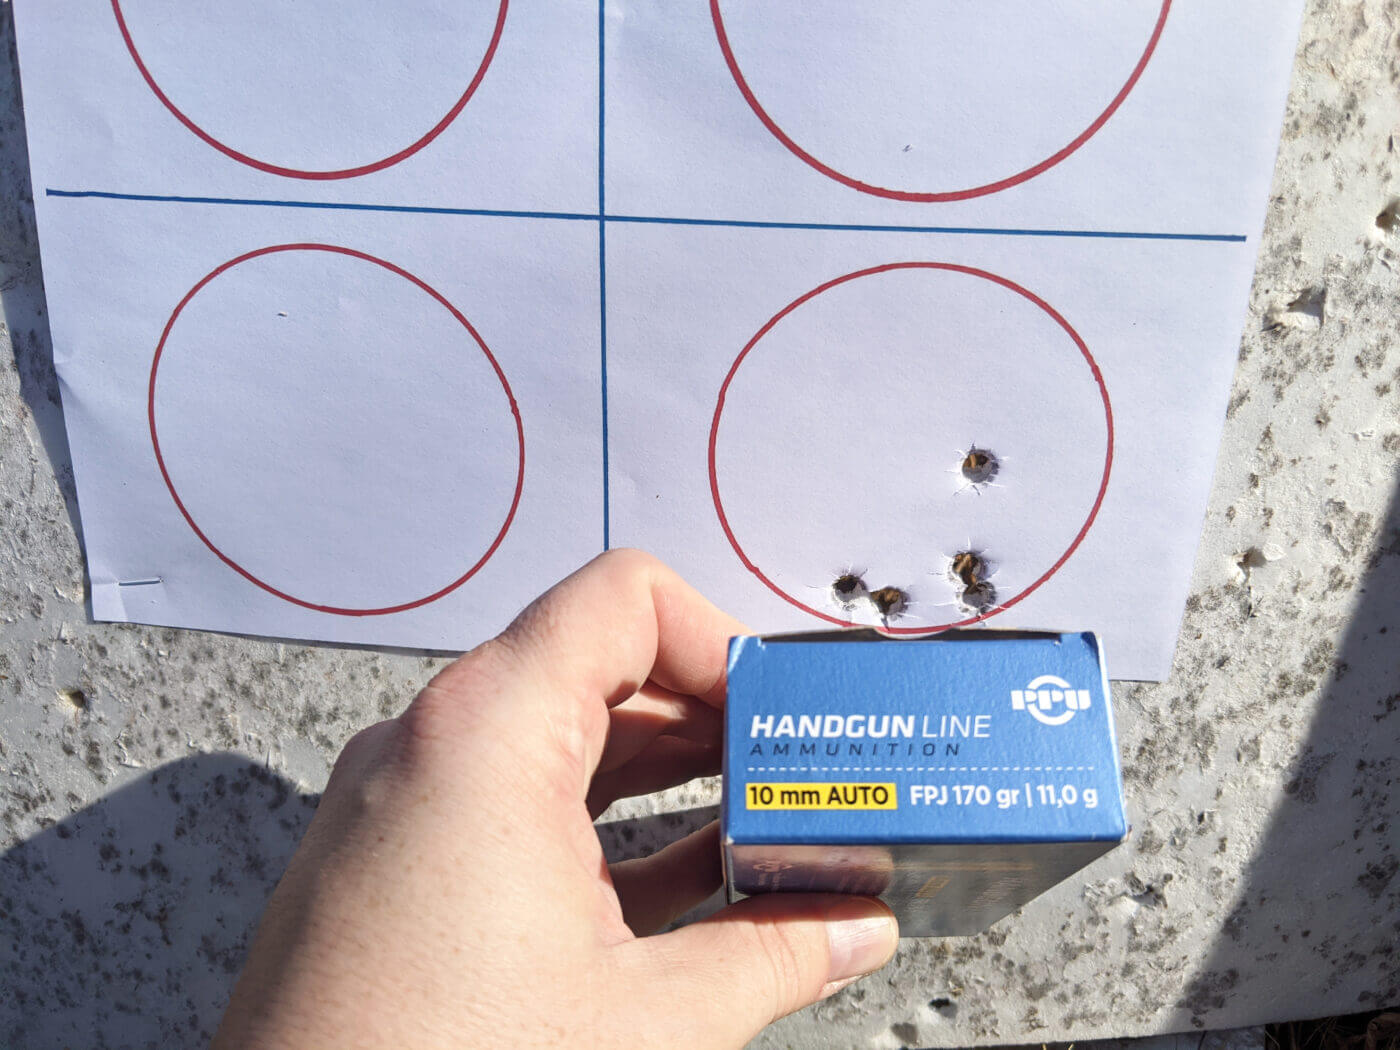 Accuracy testing of 10mm self defense ammo